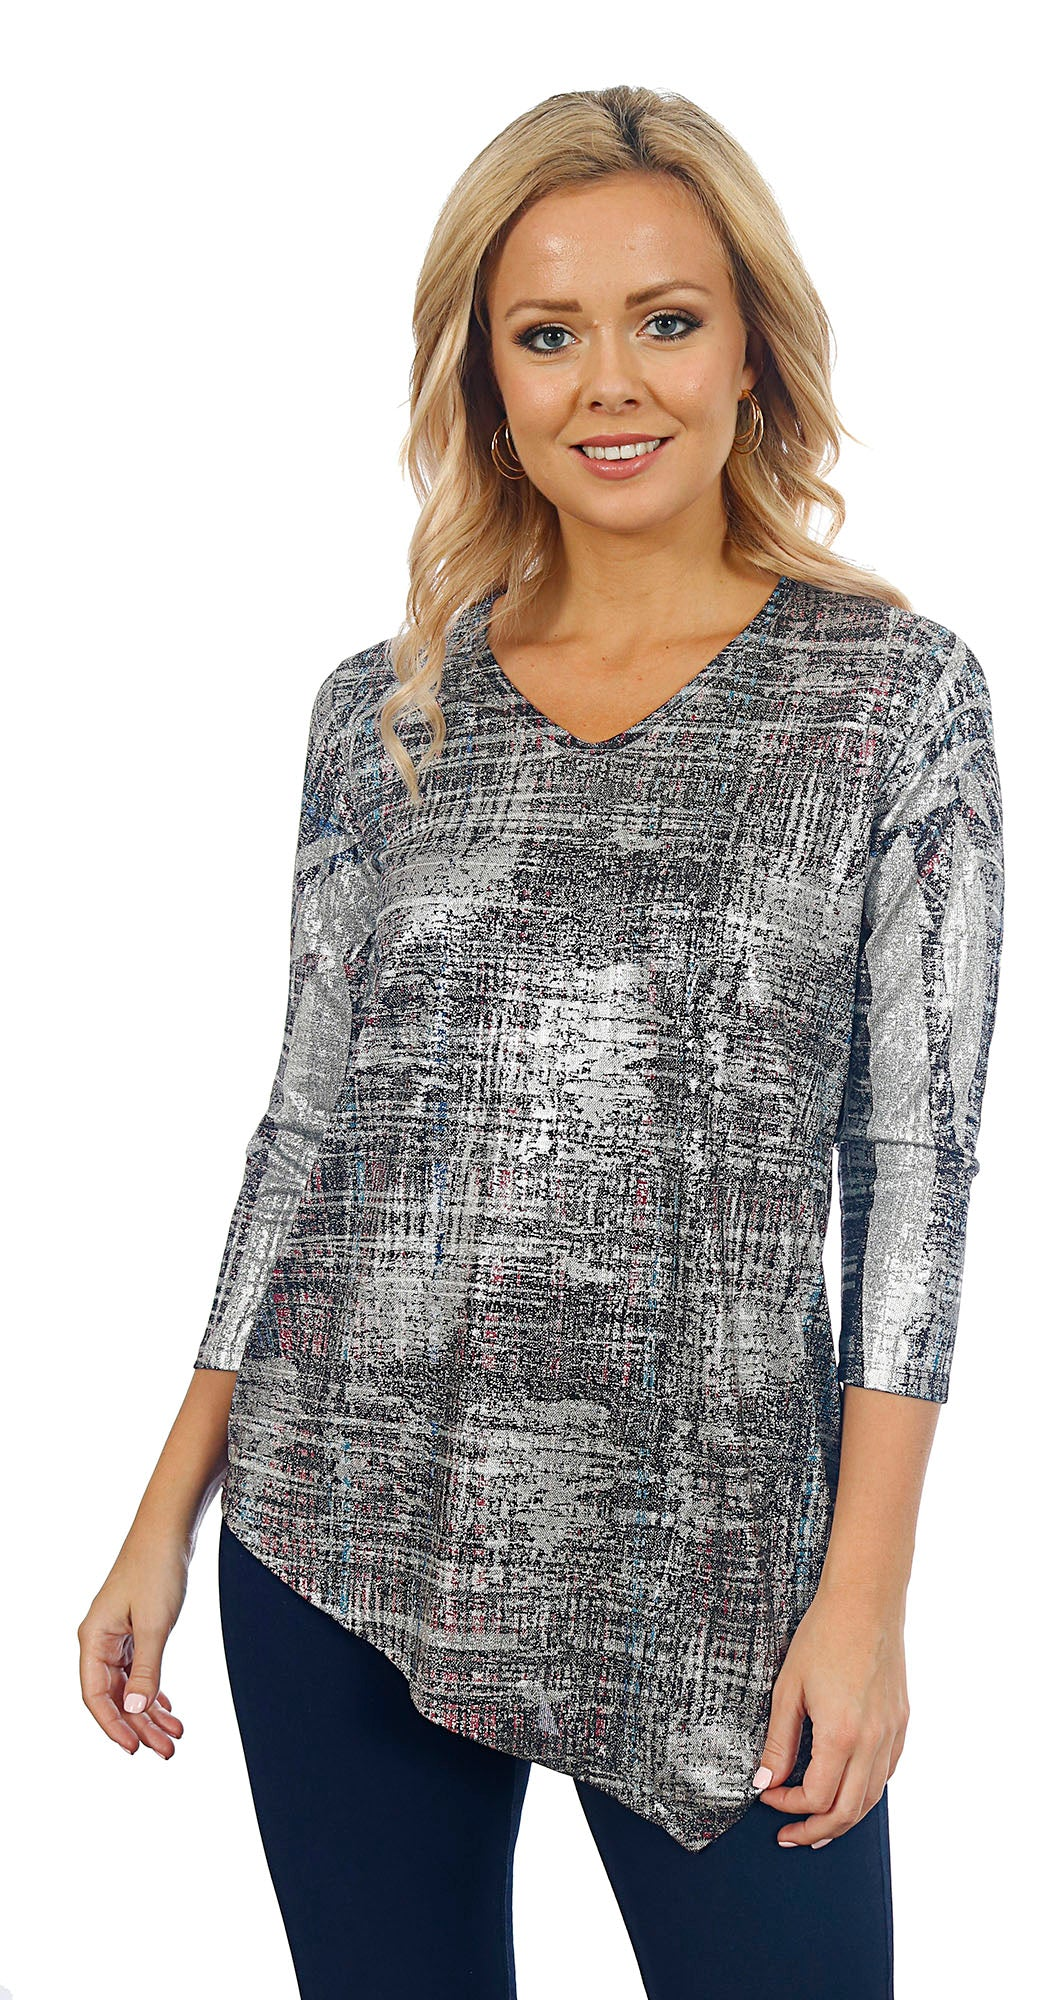 Impulse California Women's Asymmetrical Silver Foil Sweater